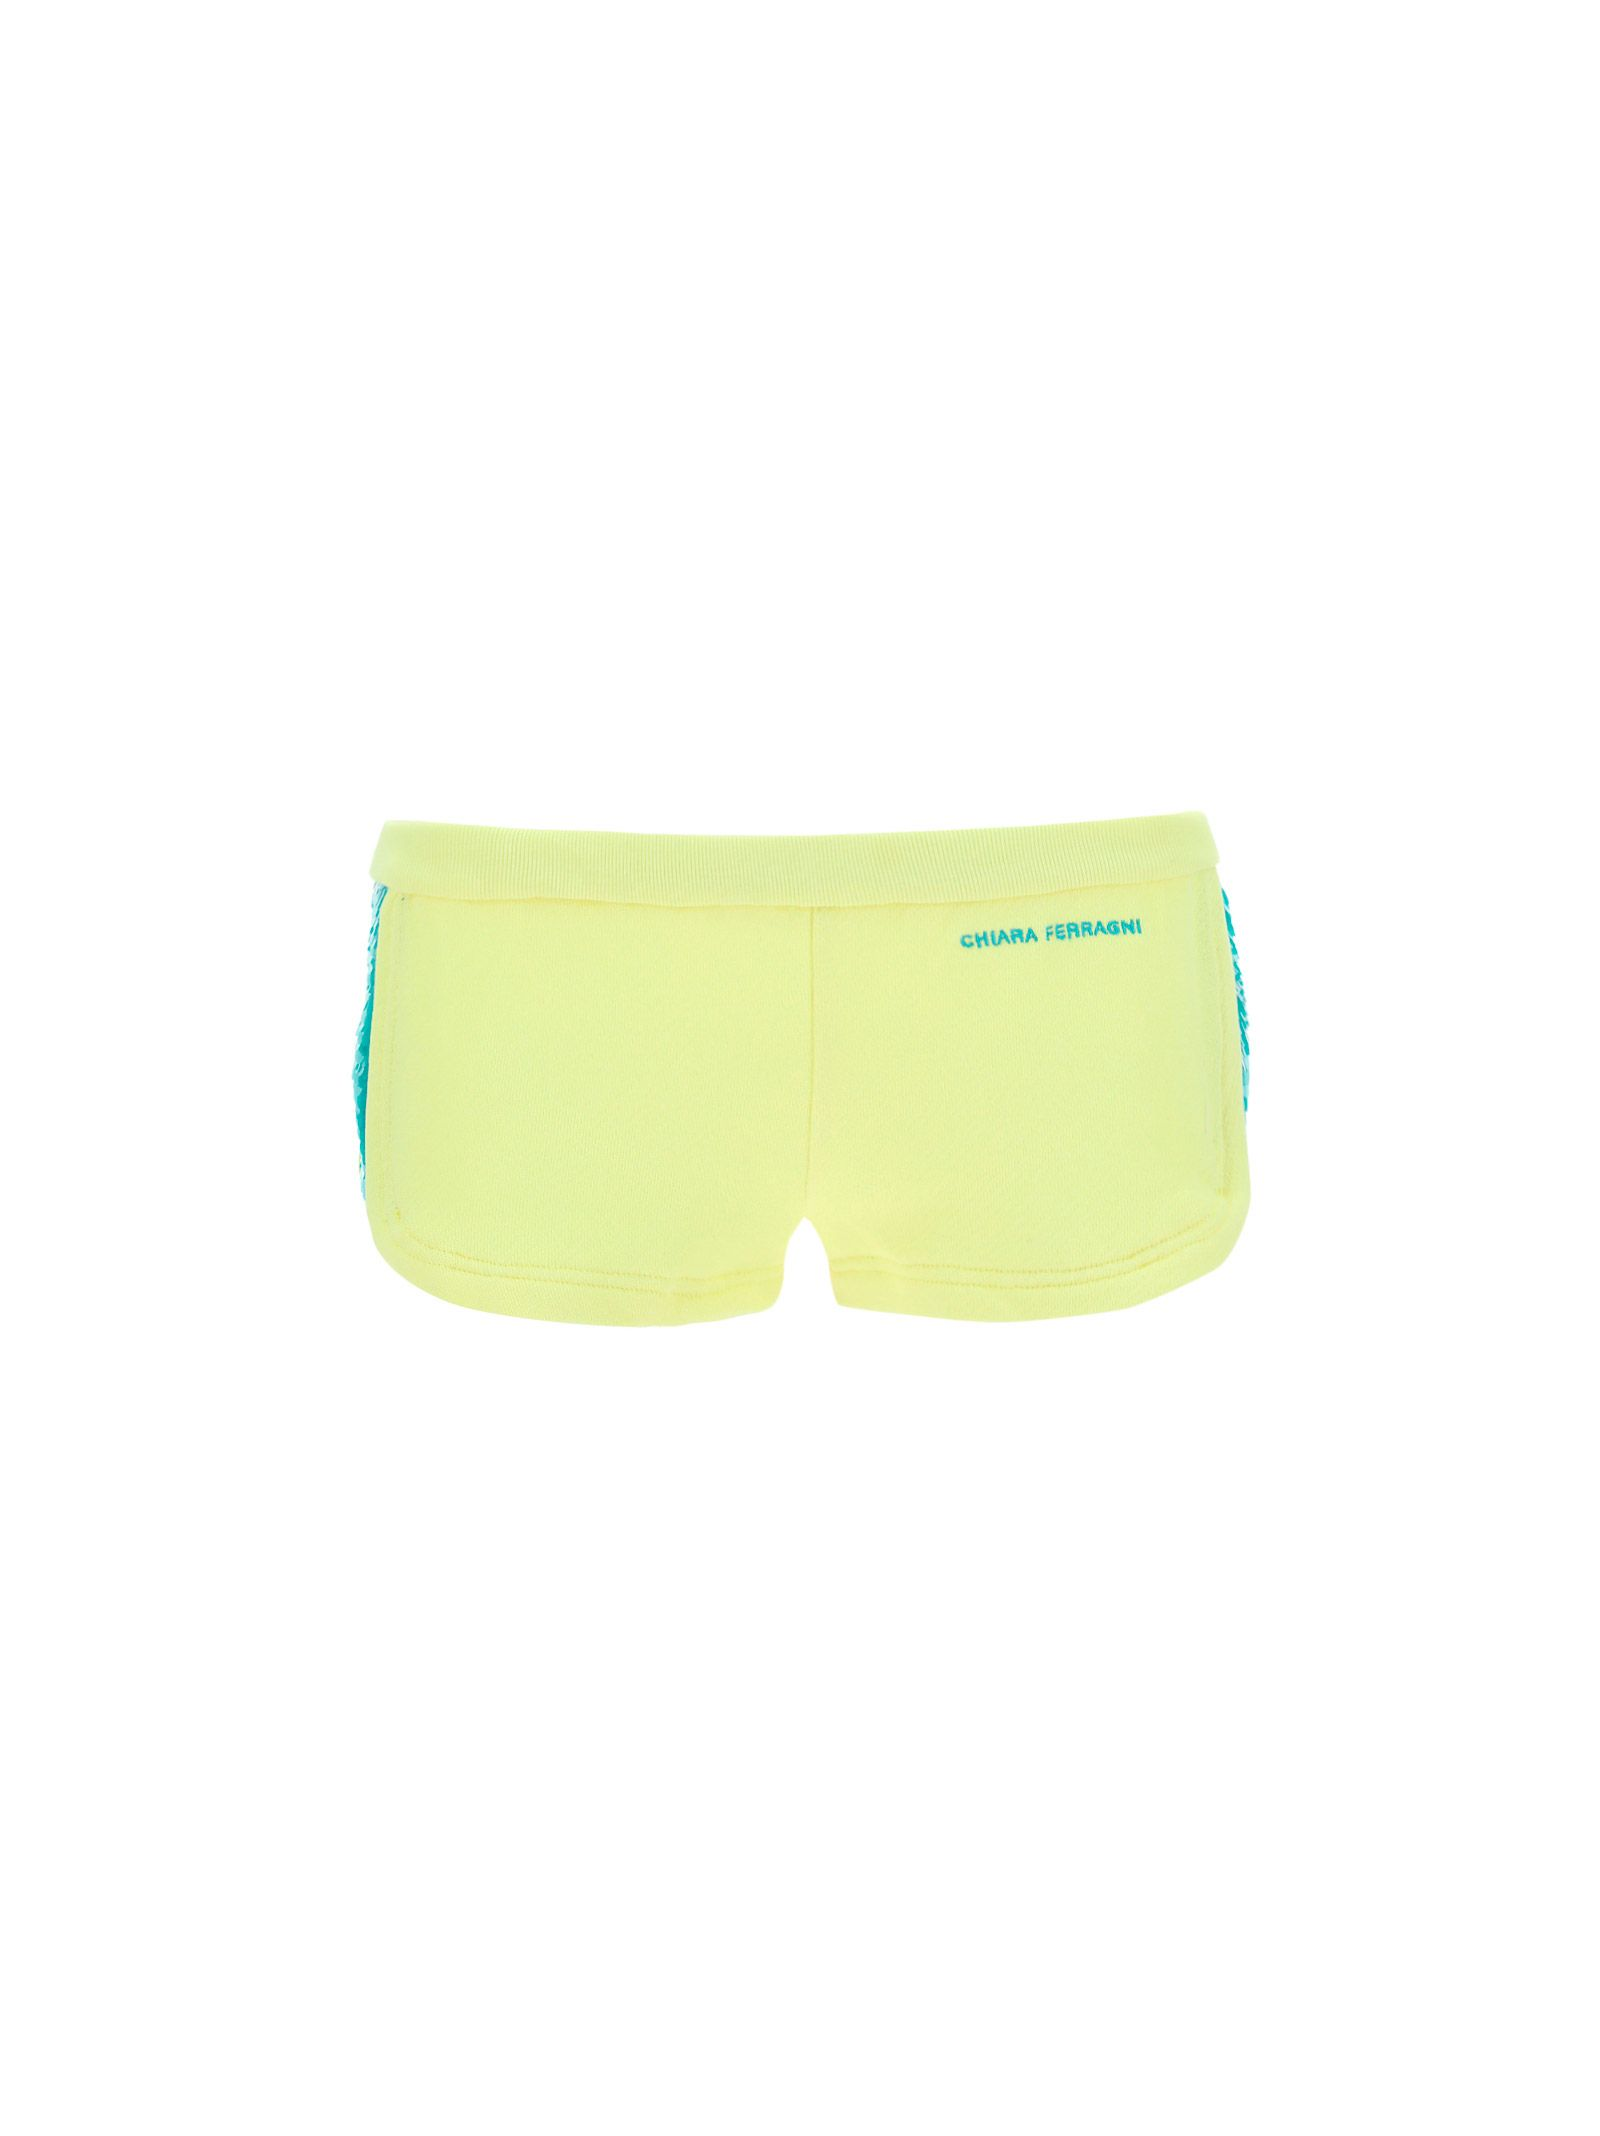 Chiara Ferragni CHIARA FERRAGNI WOMEN'S GREEN OTHER MATERIALS SHORTS